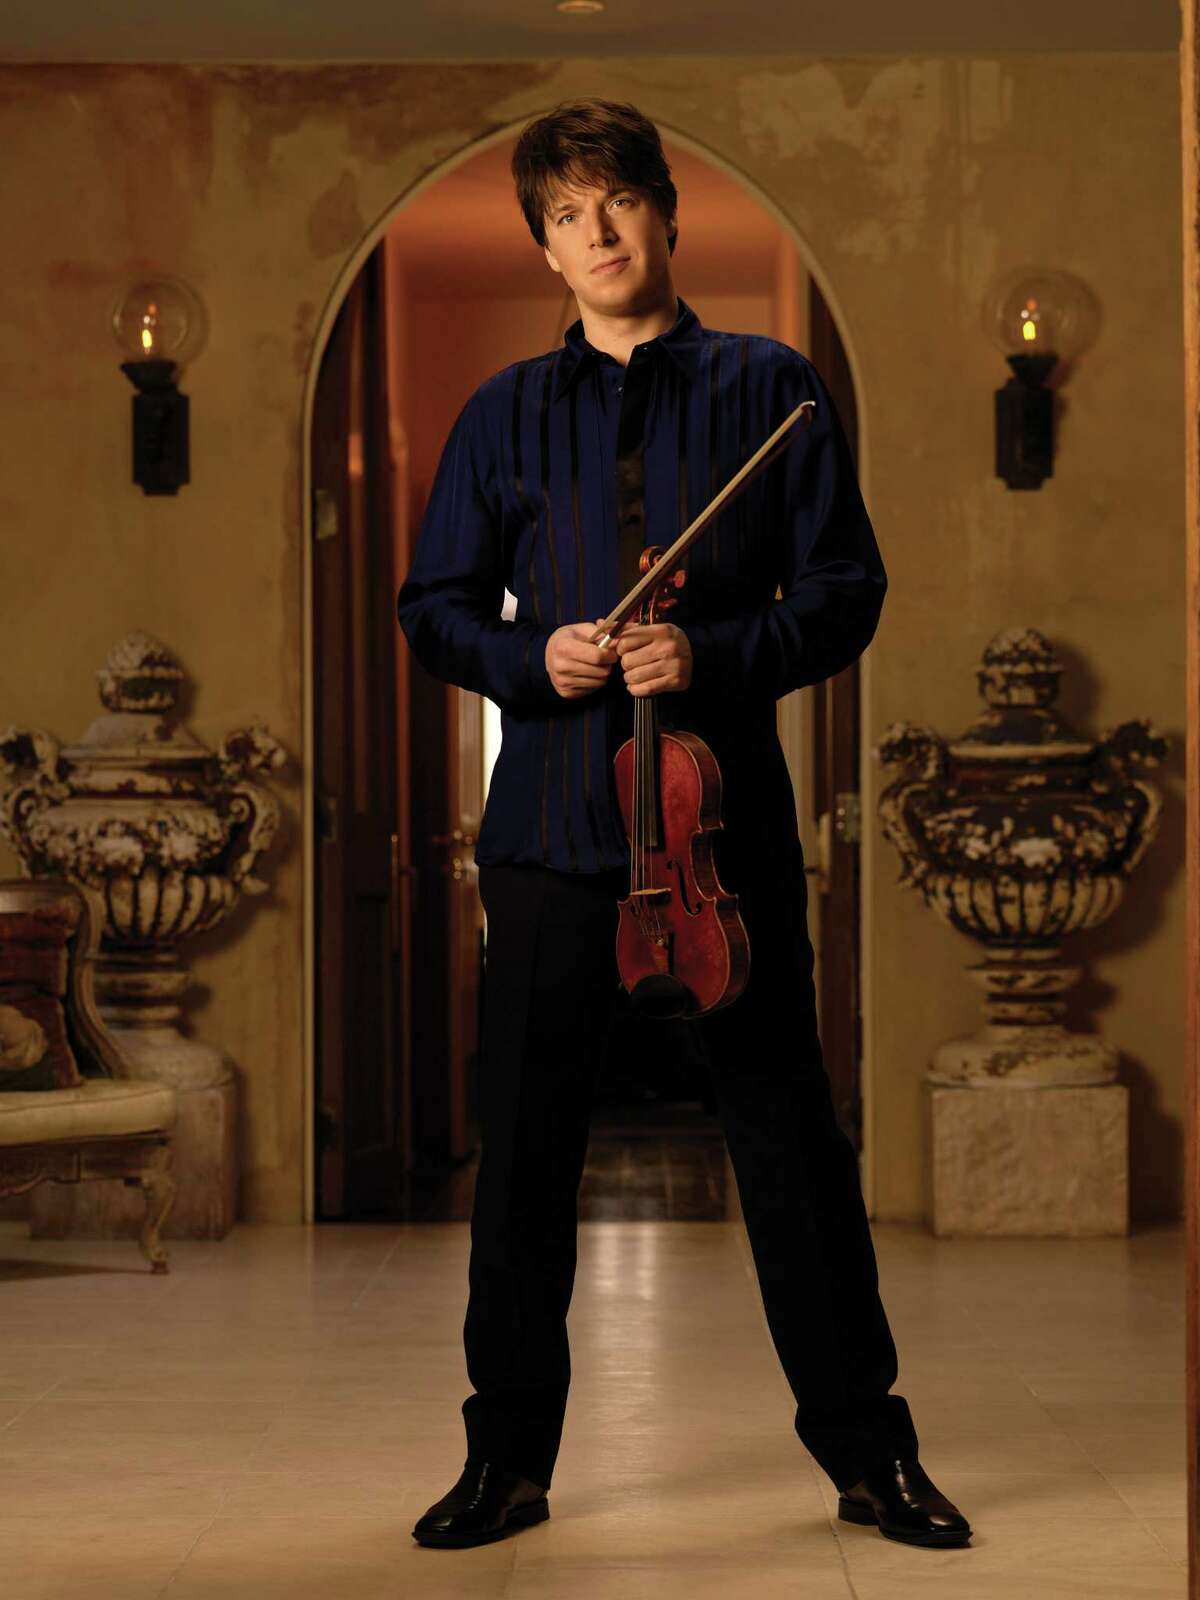 Joshua Bell will perform the Beethoven Violin Concerto with the Philadelphia Orchestra on Aug. 14 at the Saratoga Performing Arts Center.